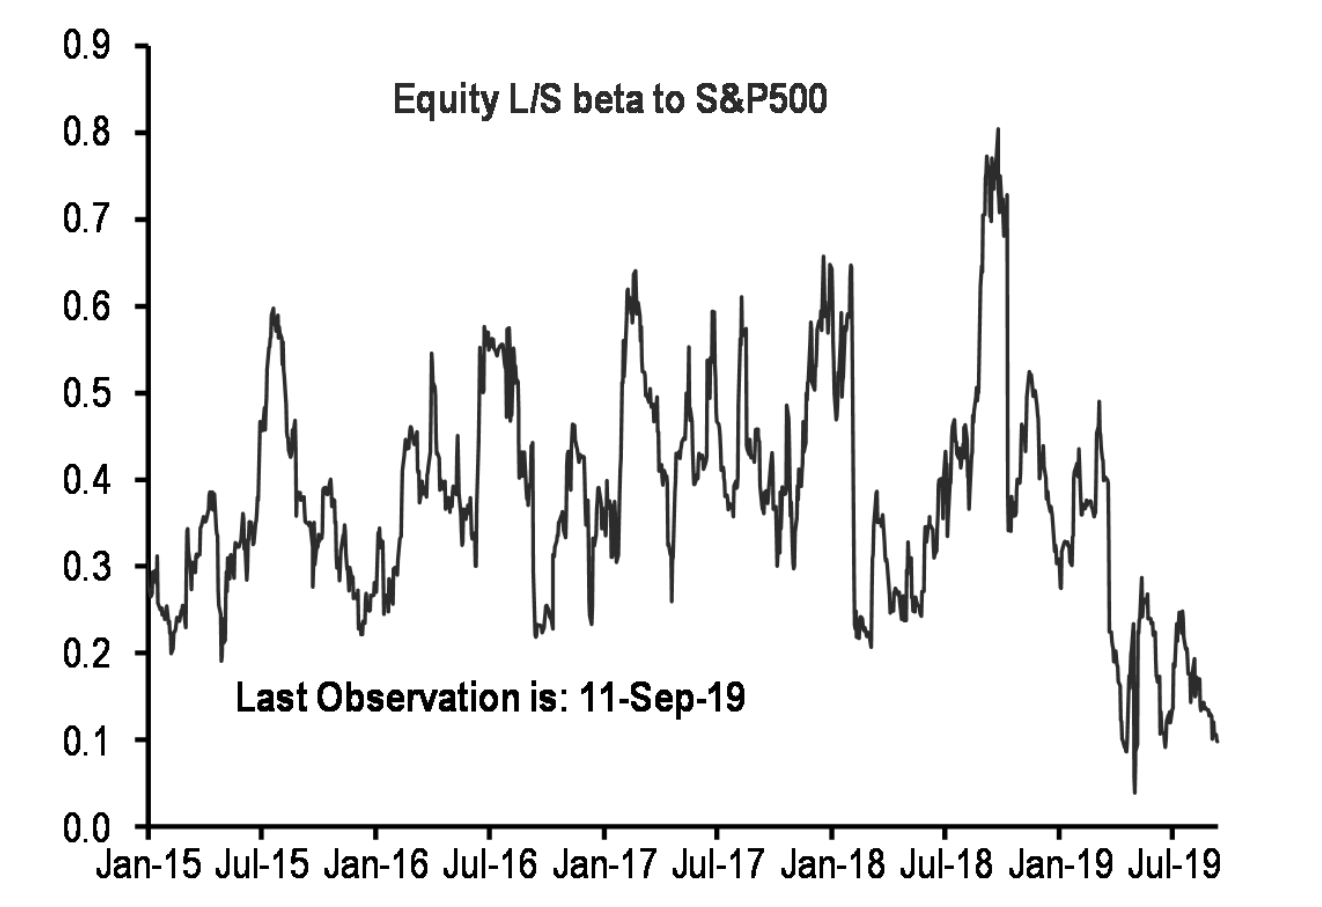 L/S HF equity beta continuing to come down